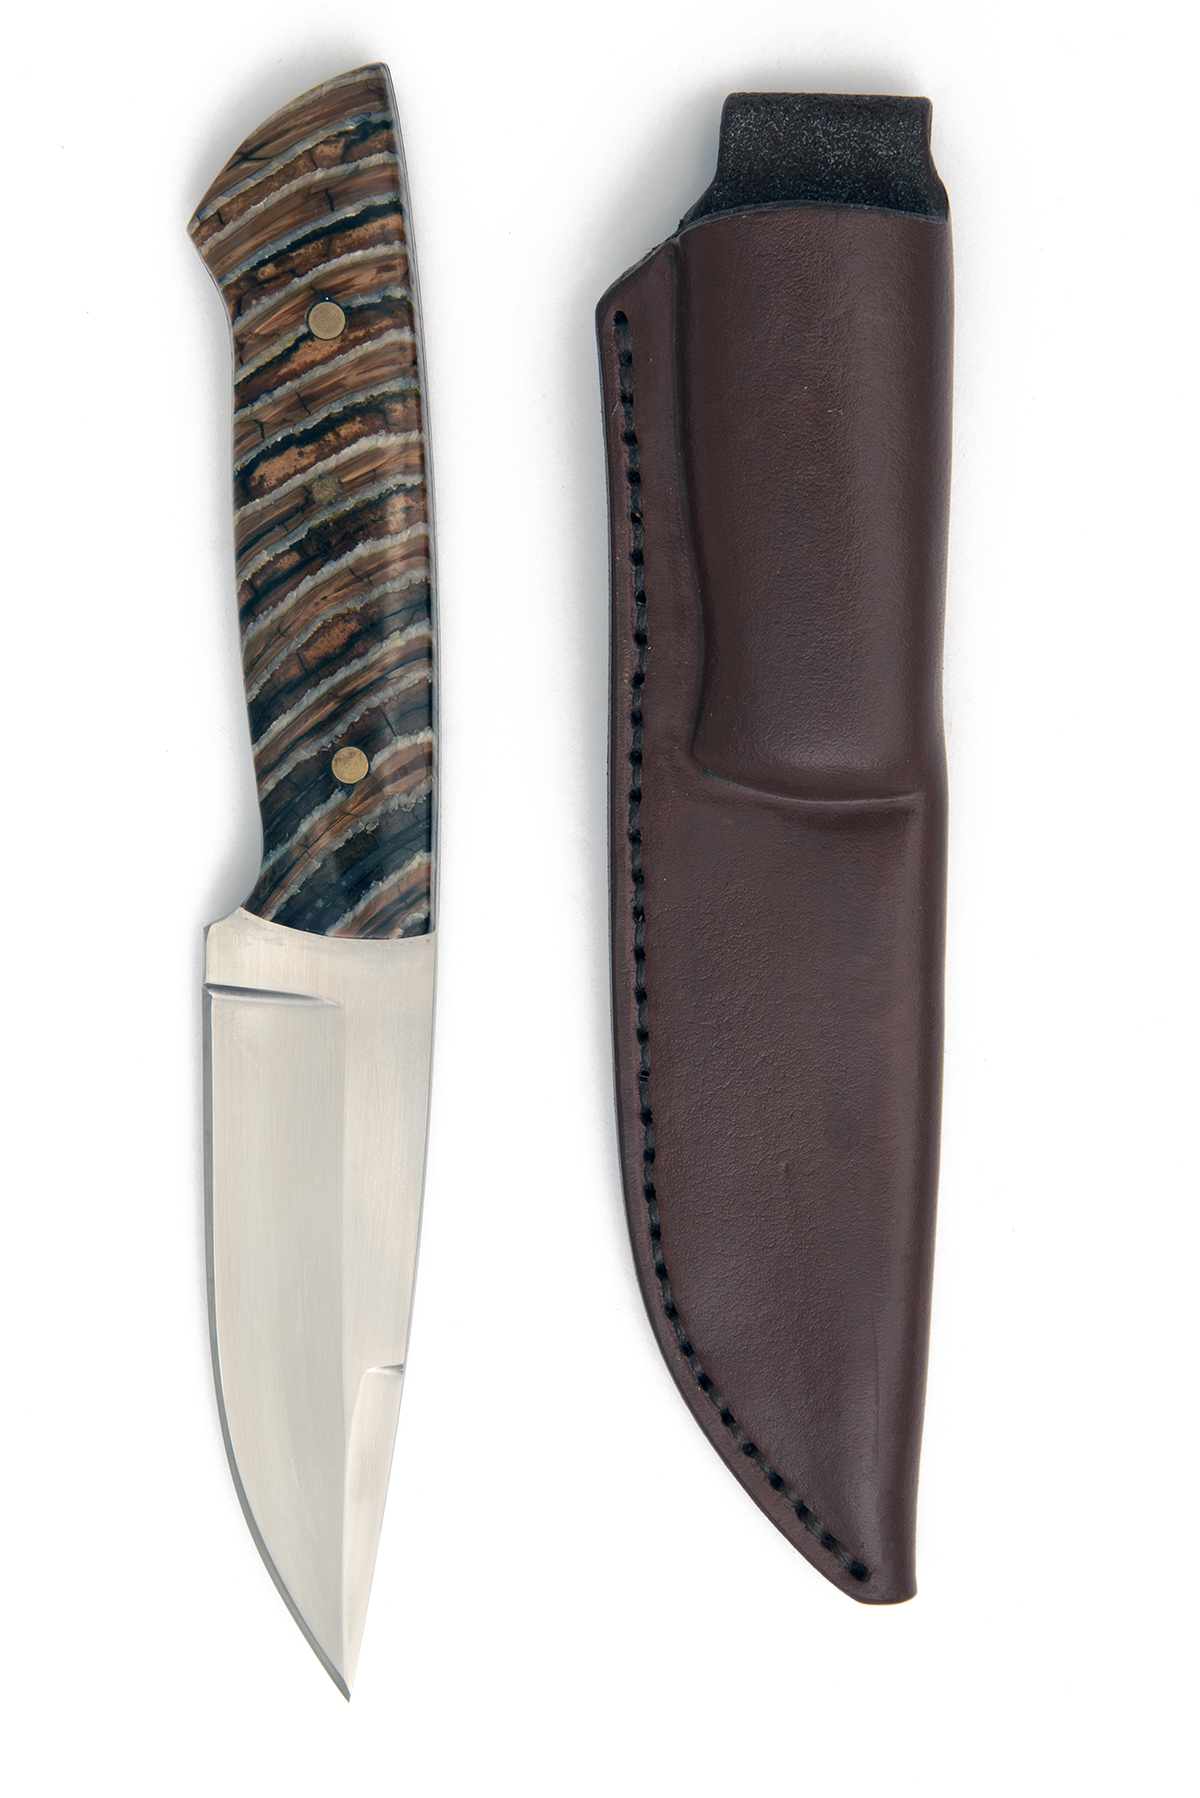 JAN-ERIC SODERHOLM, FINLAND A FINE SPORTING-KNIFE WITH FOSSILISED MAMMOTH-TOOTH HILT, recent, with